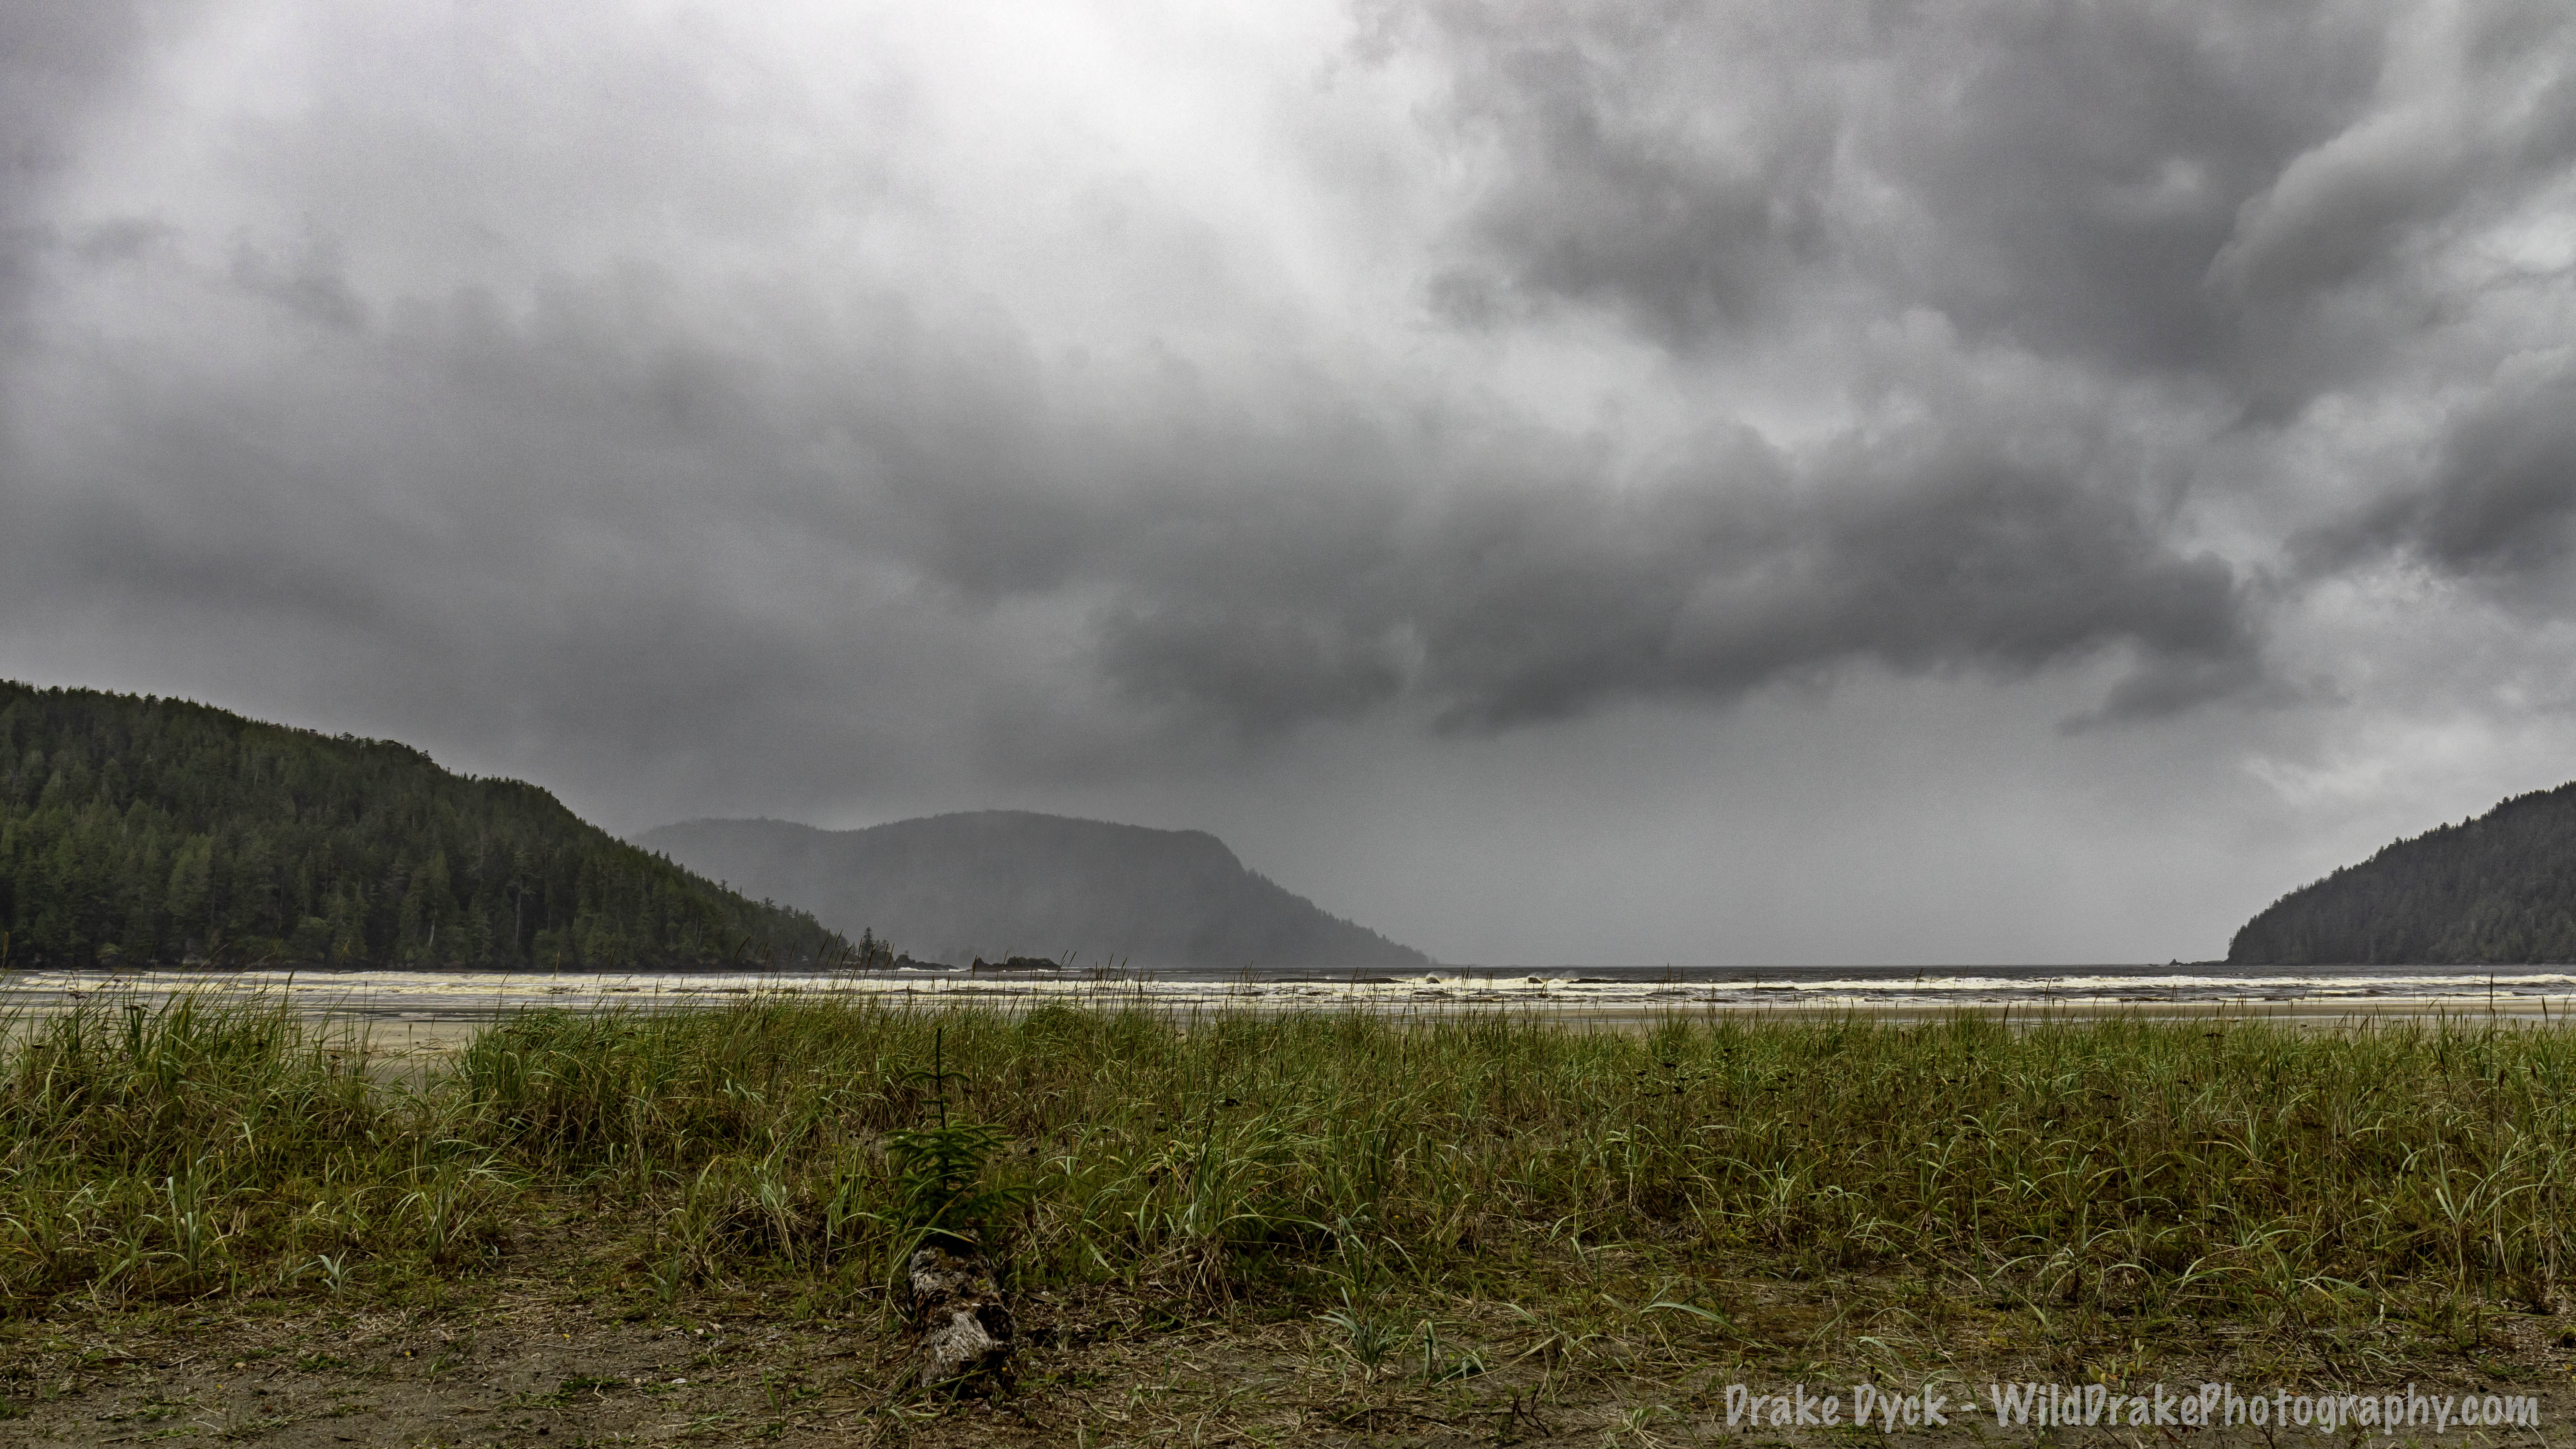 menacing dark grey clouds and misty rain over the treed slopes of Cape Scott Provincial Park